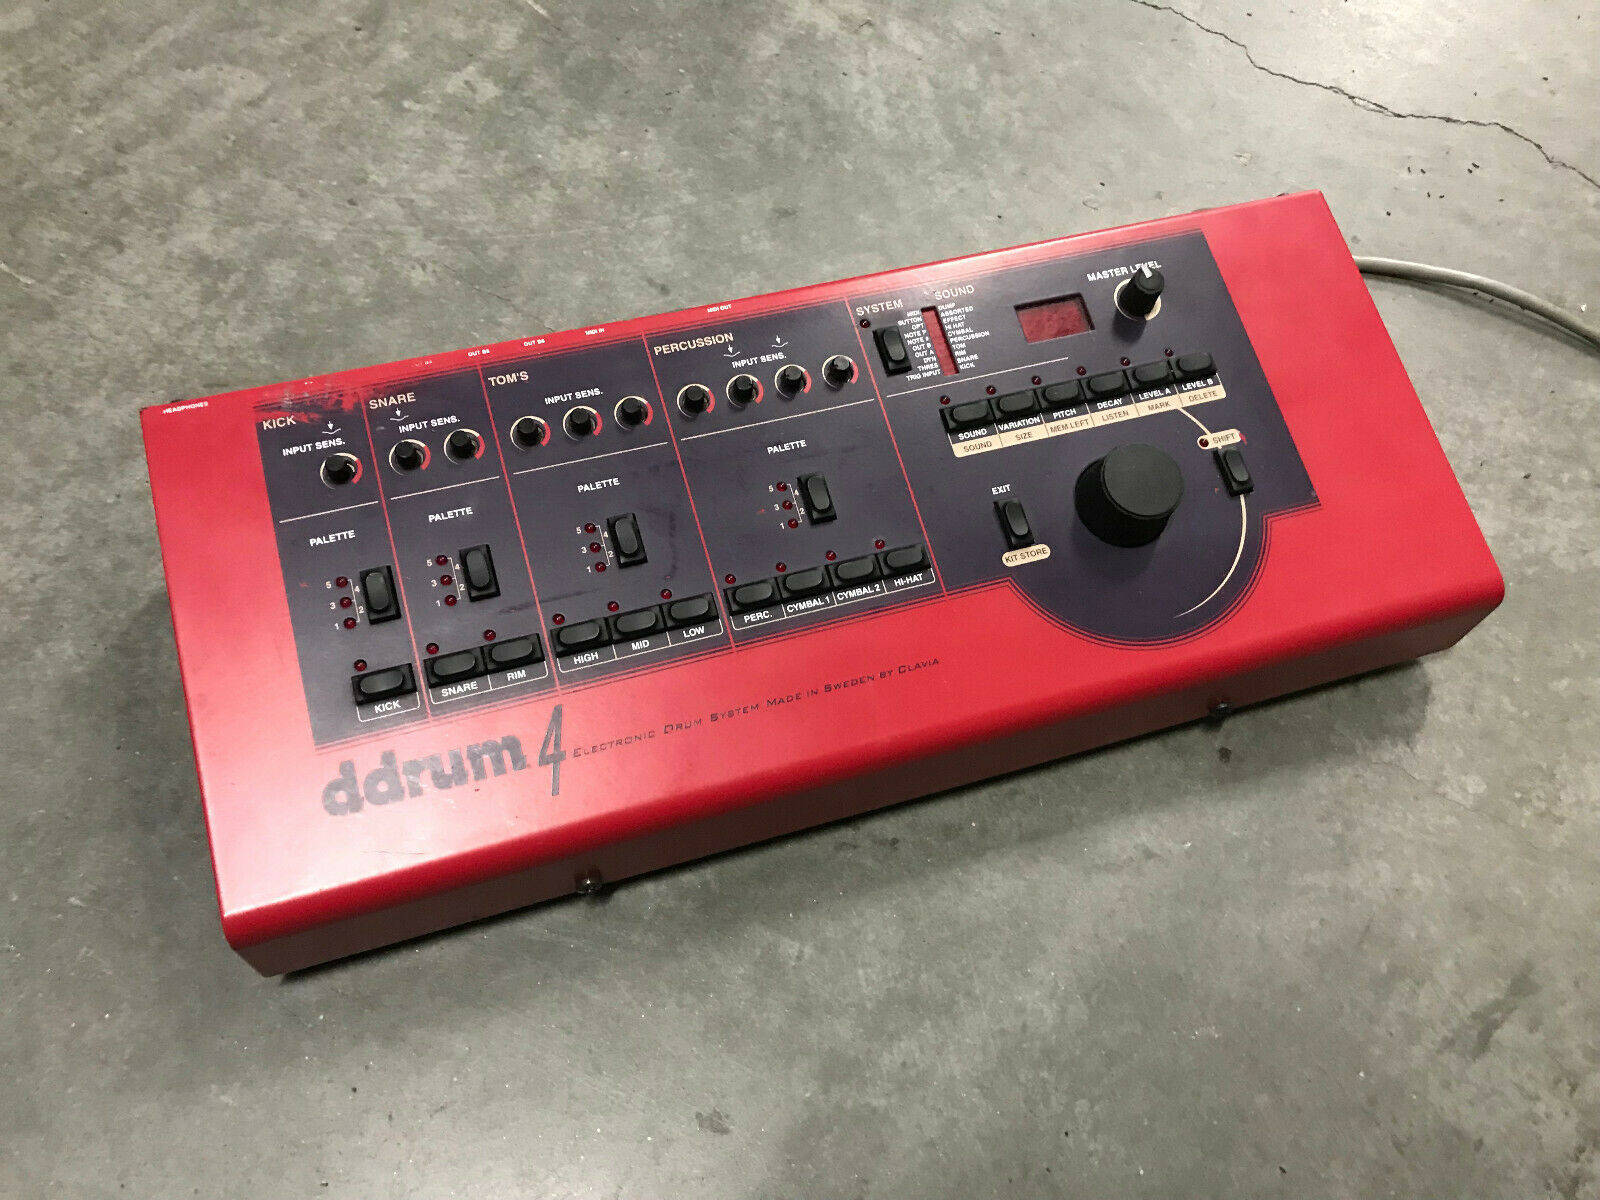 DDRUM 4 ELECTRONIC DRUM MODULE BRAIN